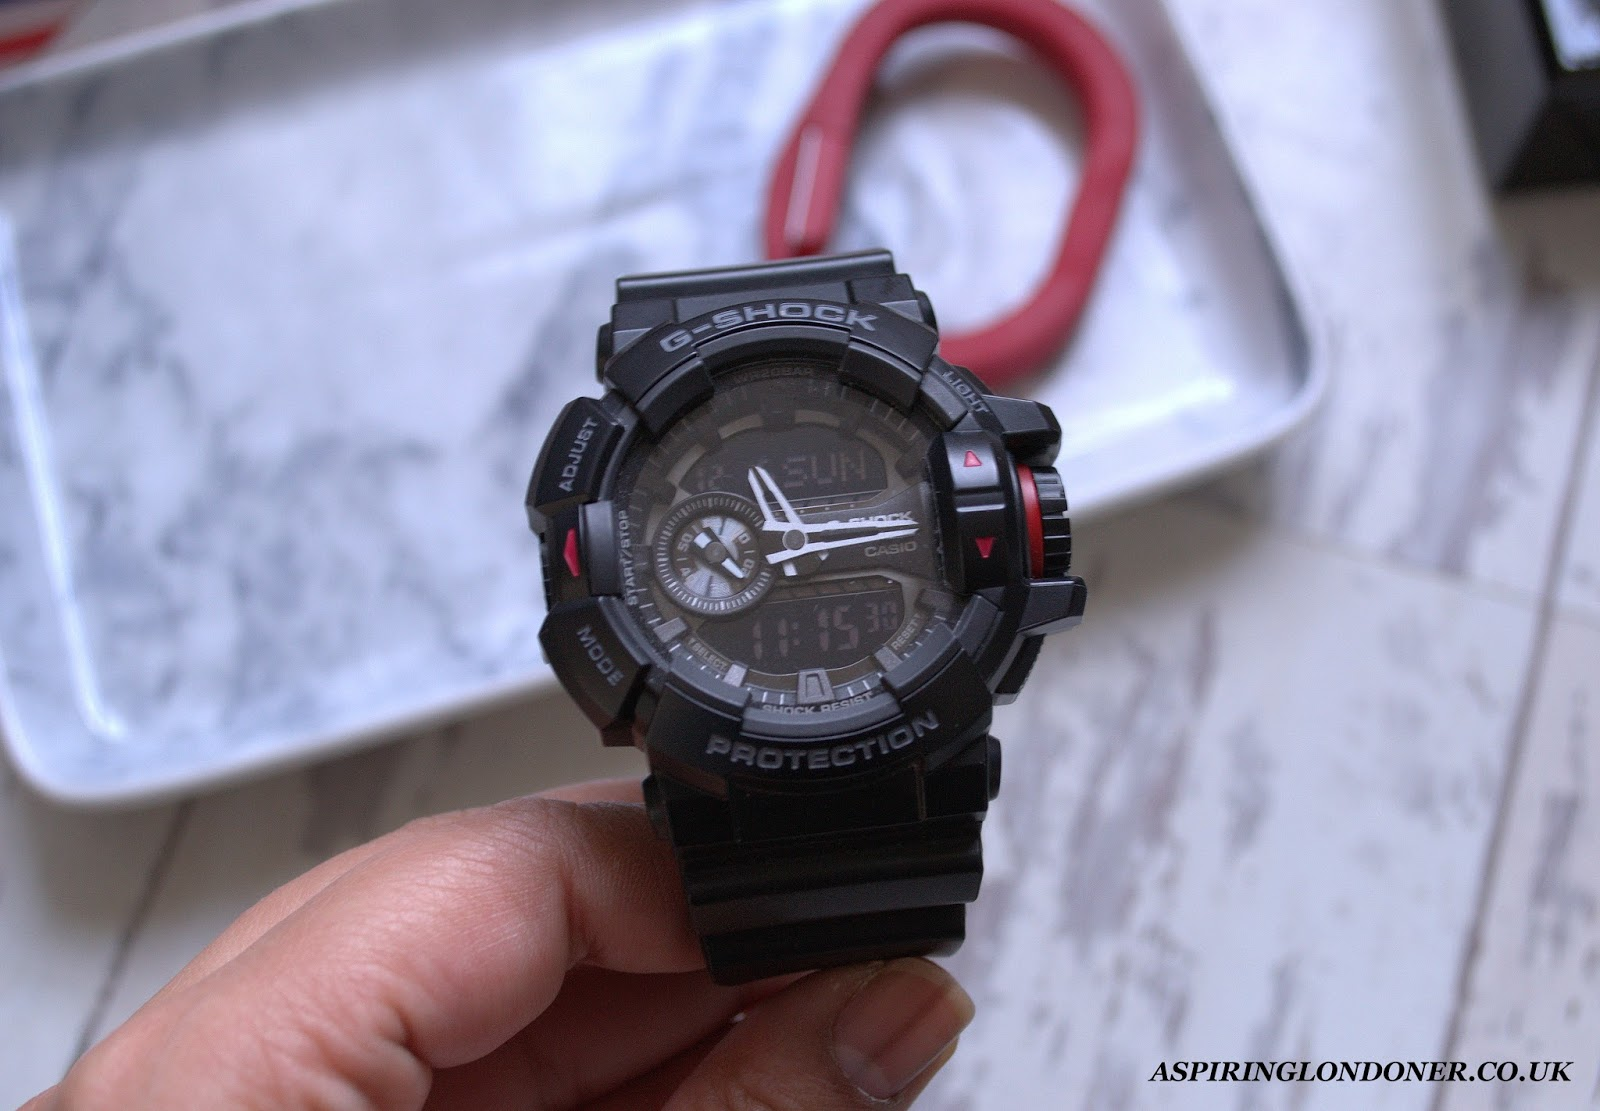 Casio G-Shock Chronograph Men's Watch Review - Aspiring Londoner